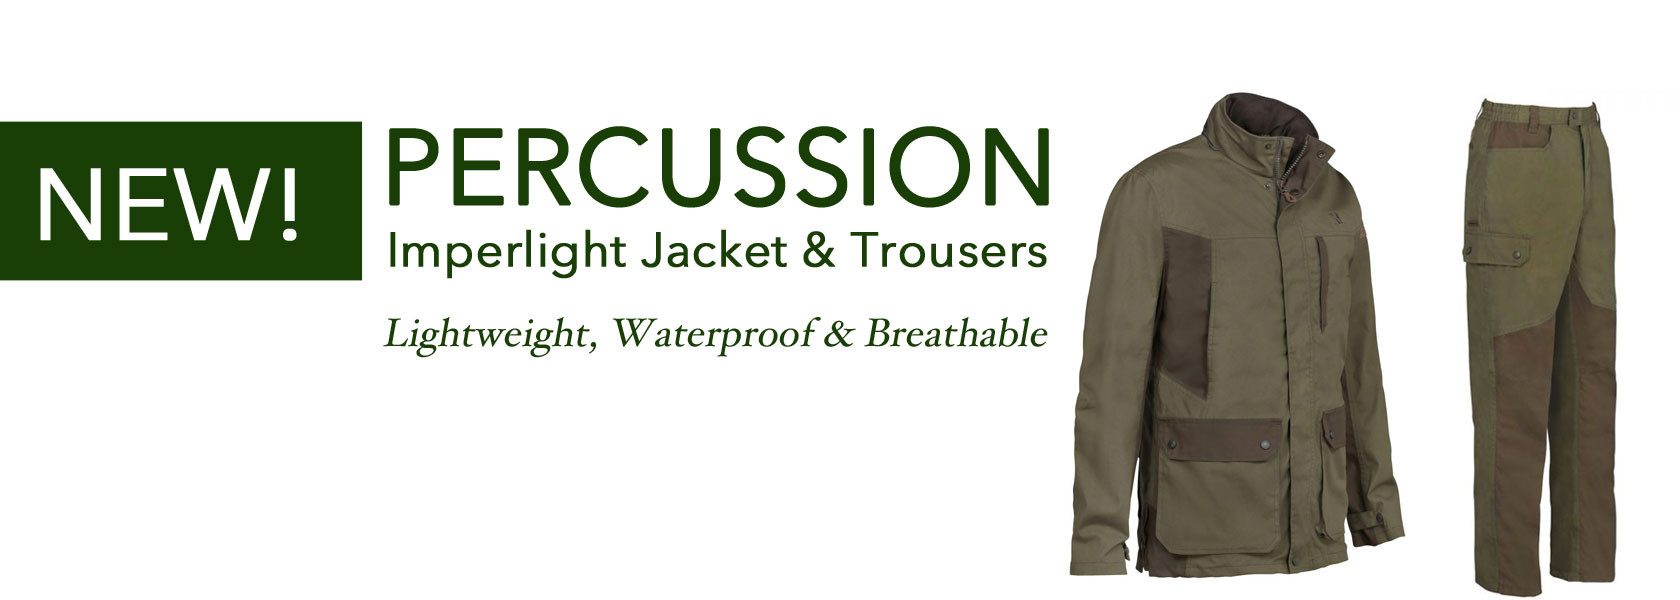 Percussion Imperlight Jacket & Trousers